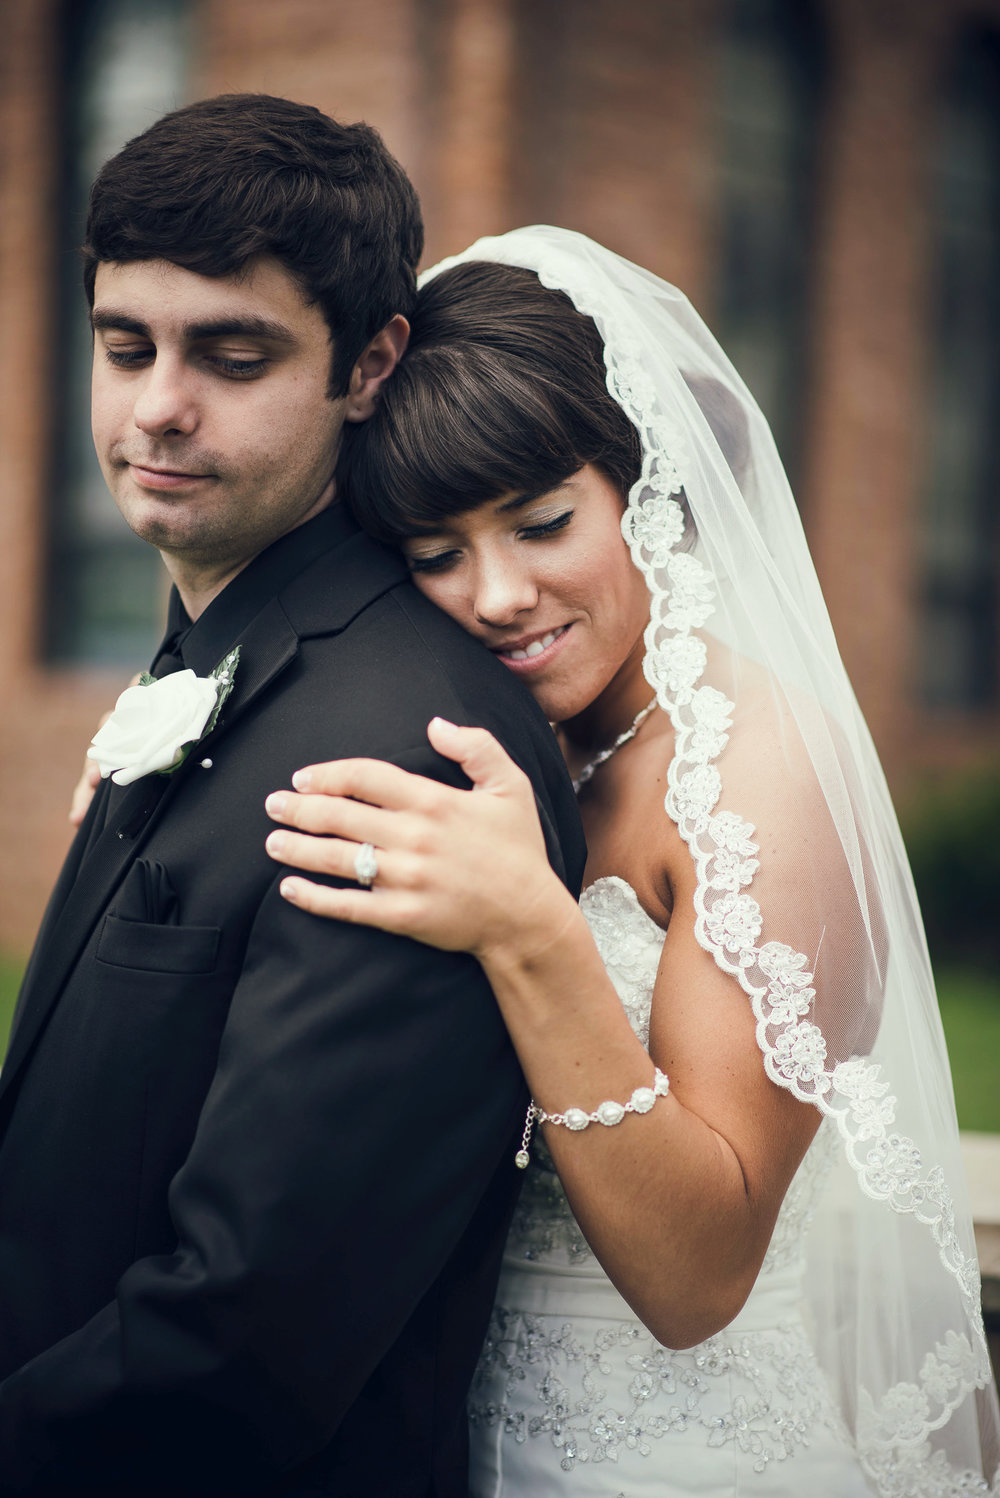 Wedding Photography - All day coverage